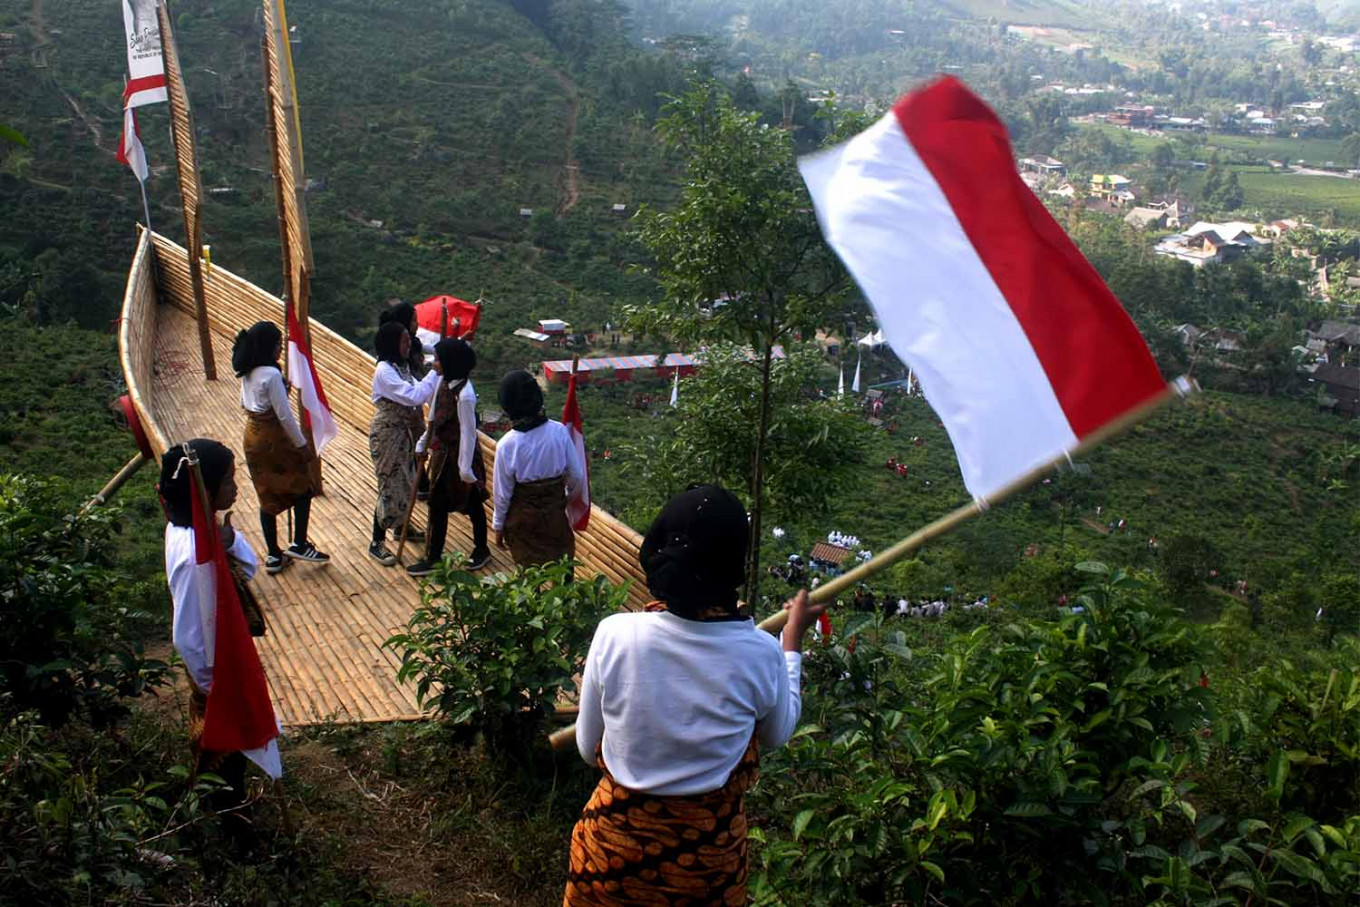 Students of SMP 1 state junior high school in Ngargoyoso carry flags in Sumilir Valley. JP/Maksum Nur Fauzan